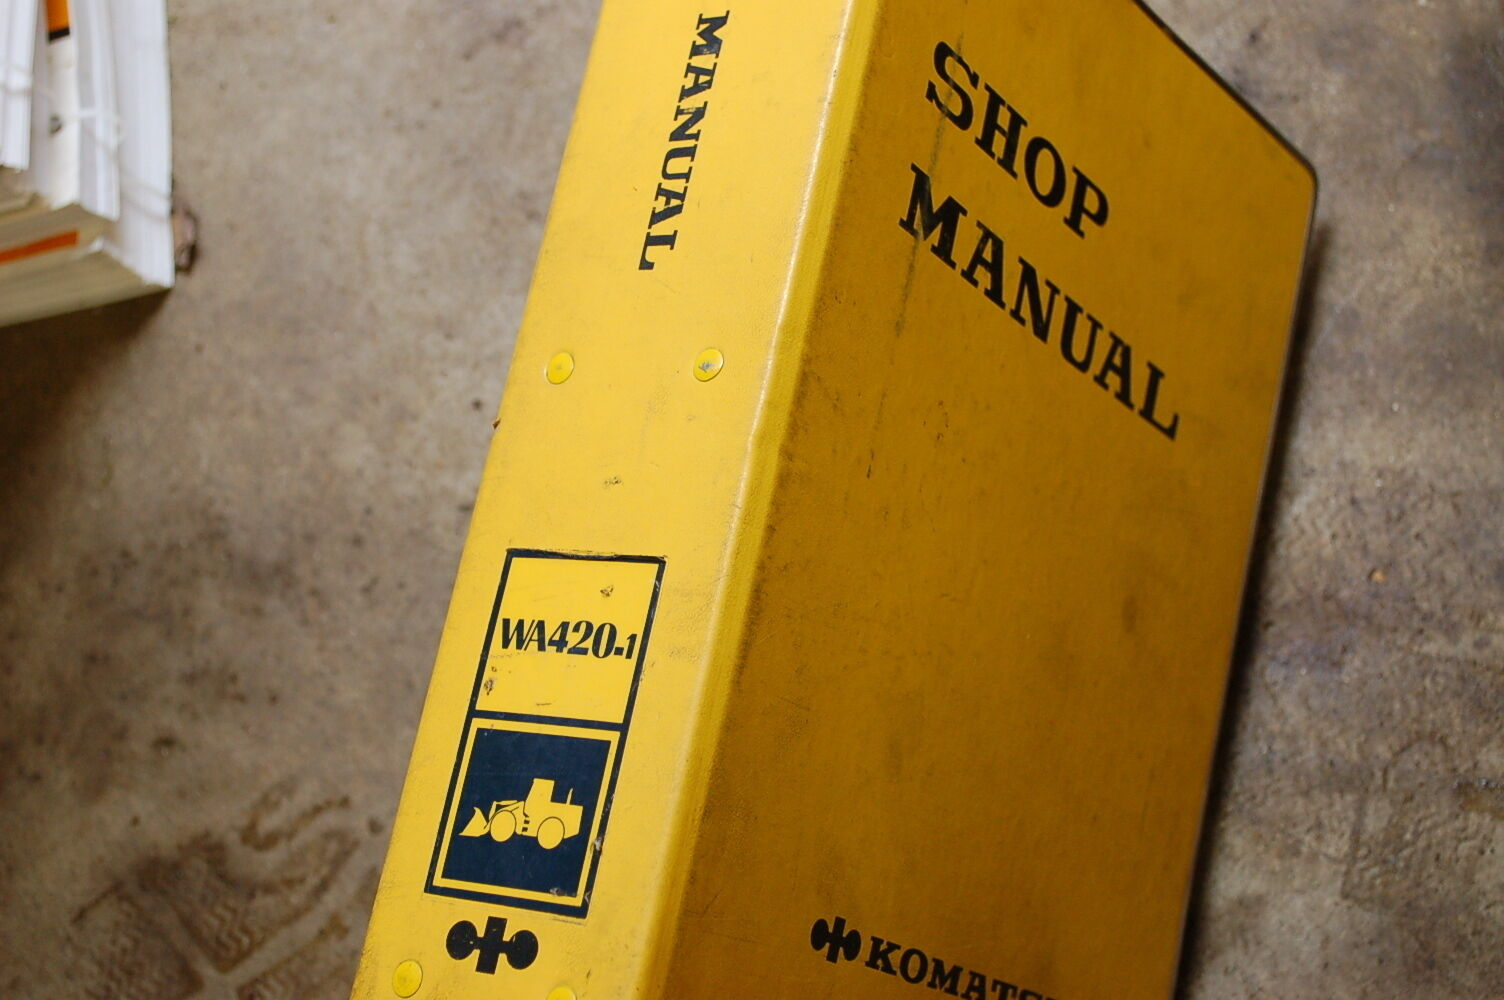 KOMATSU WA420-1 Front End Wheel Loader Service Repair Manual book shop  overhaul 1 of 1Only 1 available ...